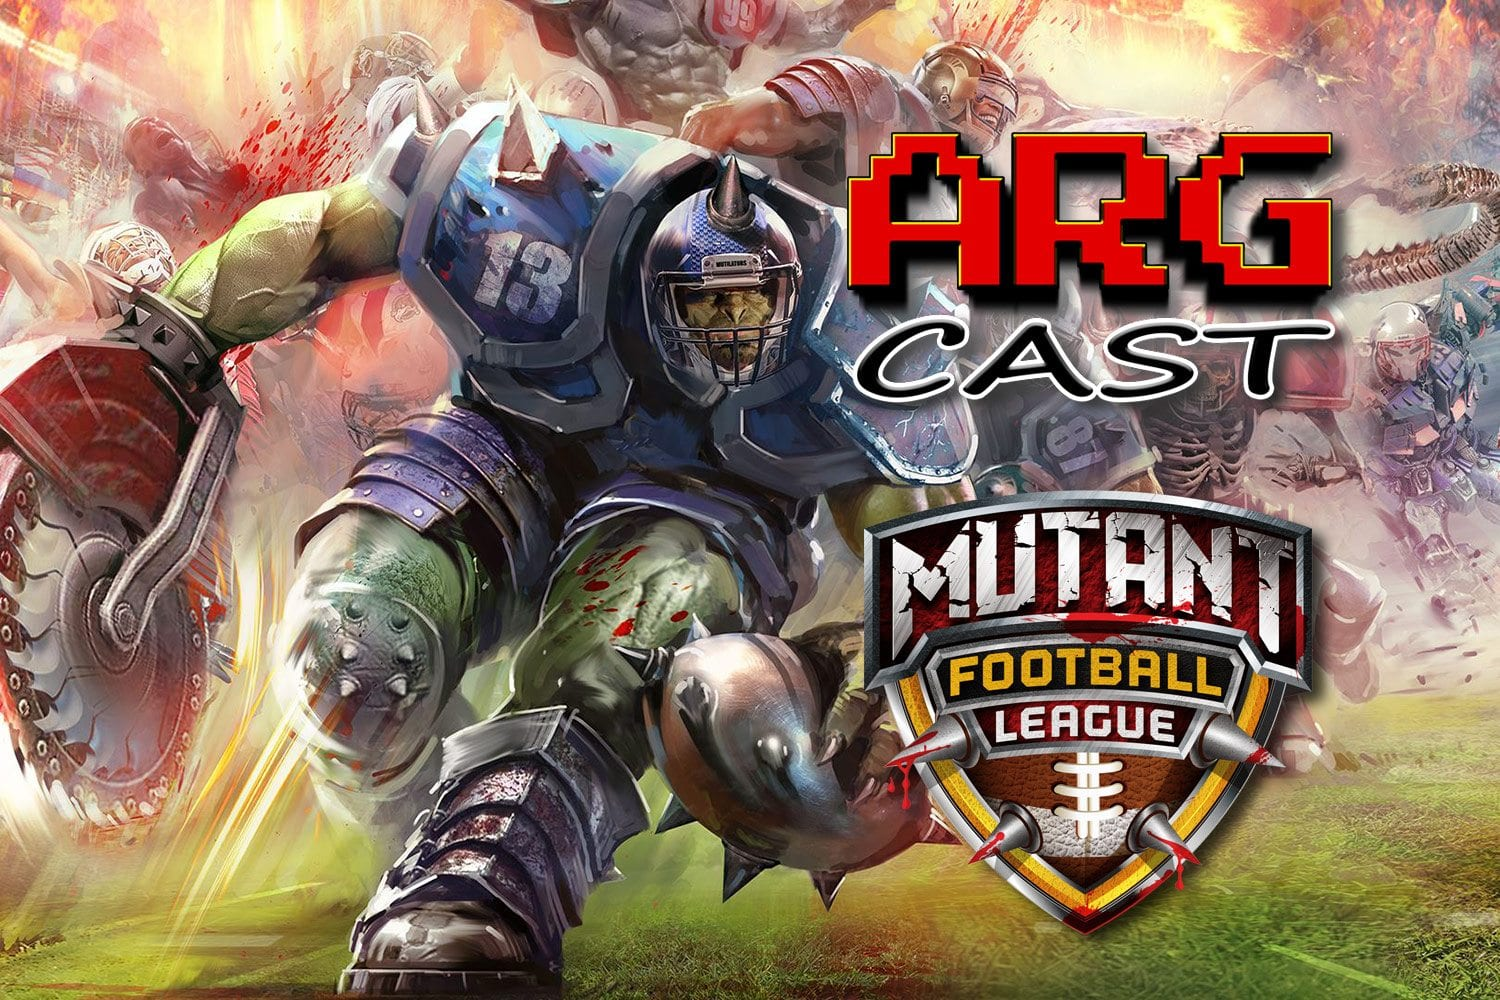 ARGcast Mini #6: Mutant Football League with Tim Kitzrow